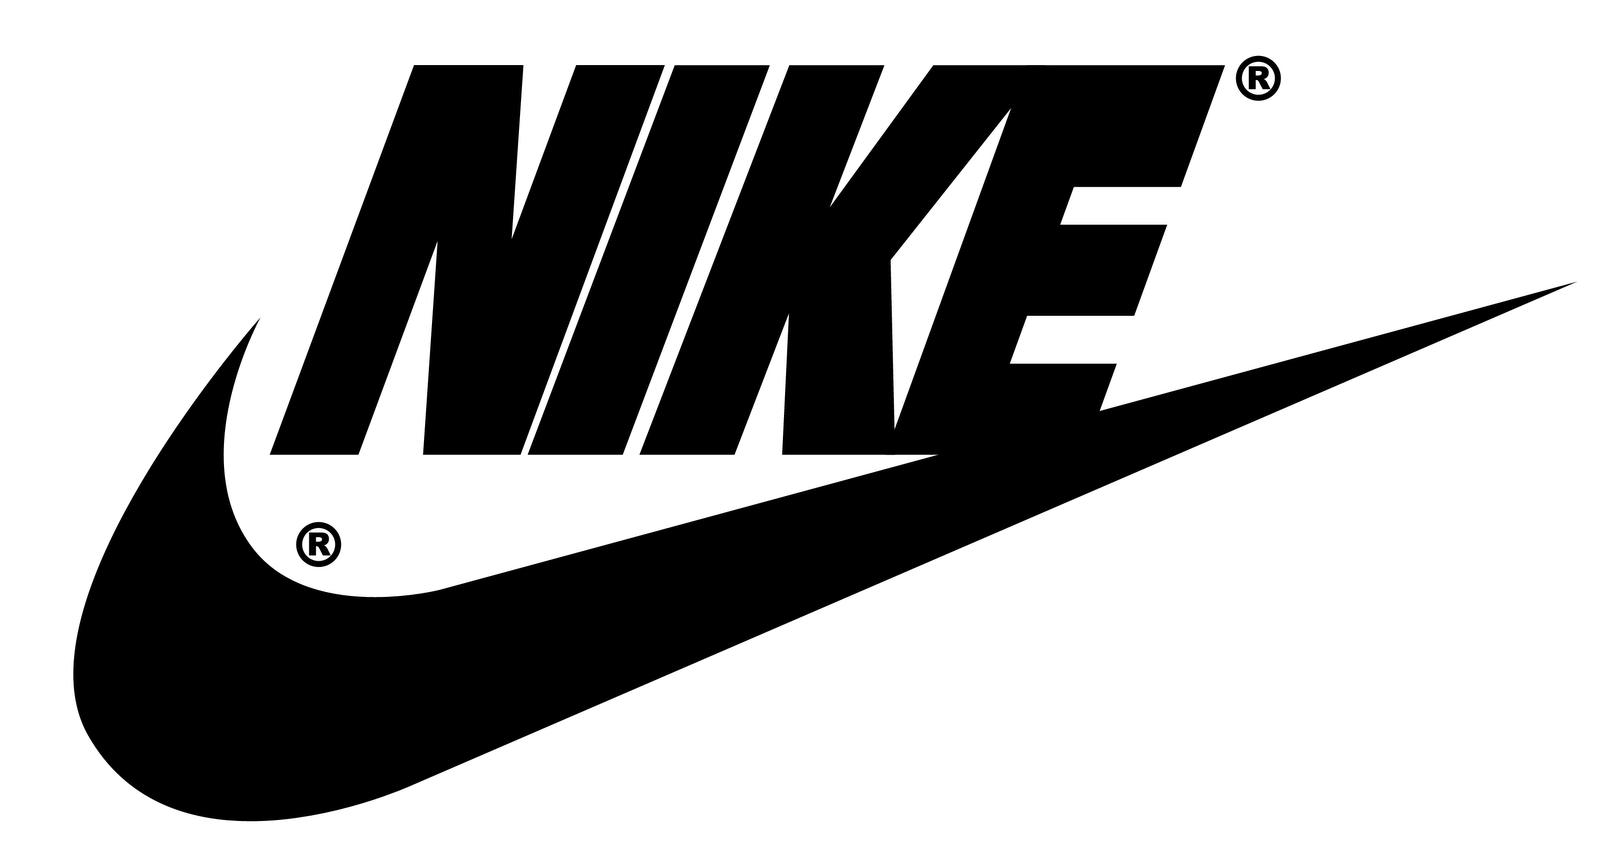 nike-swoosh-logo-png-the-top-10-most-